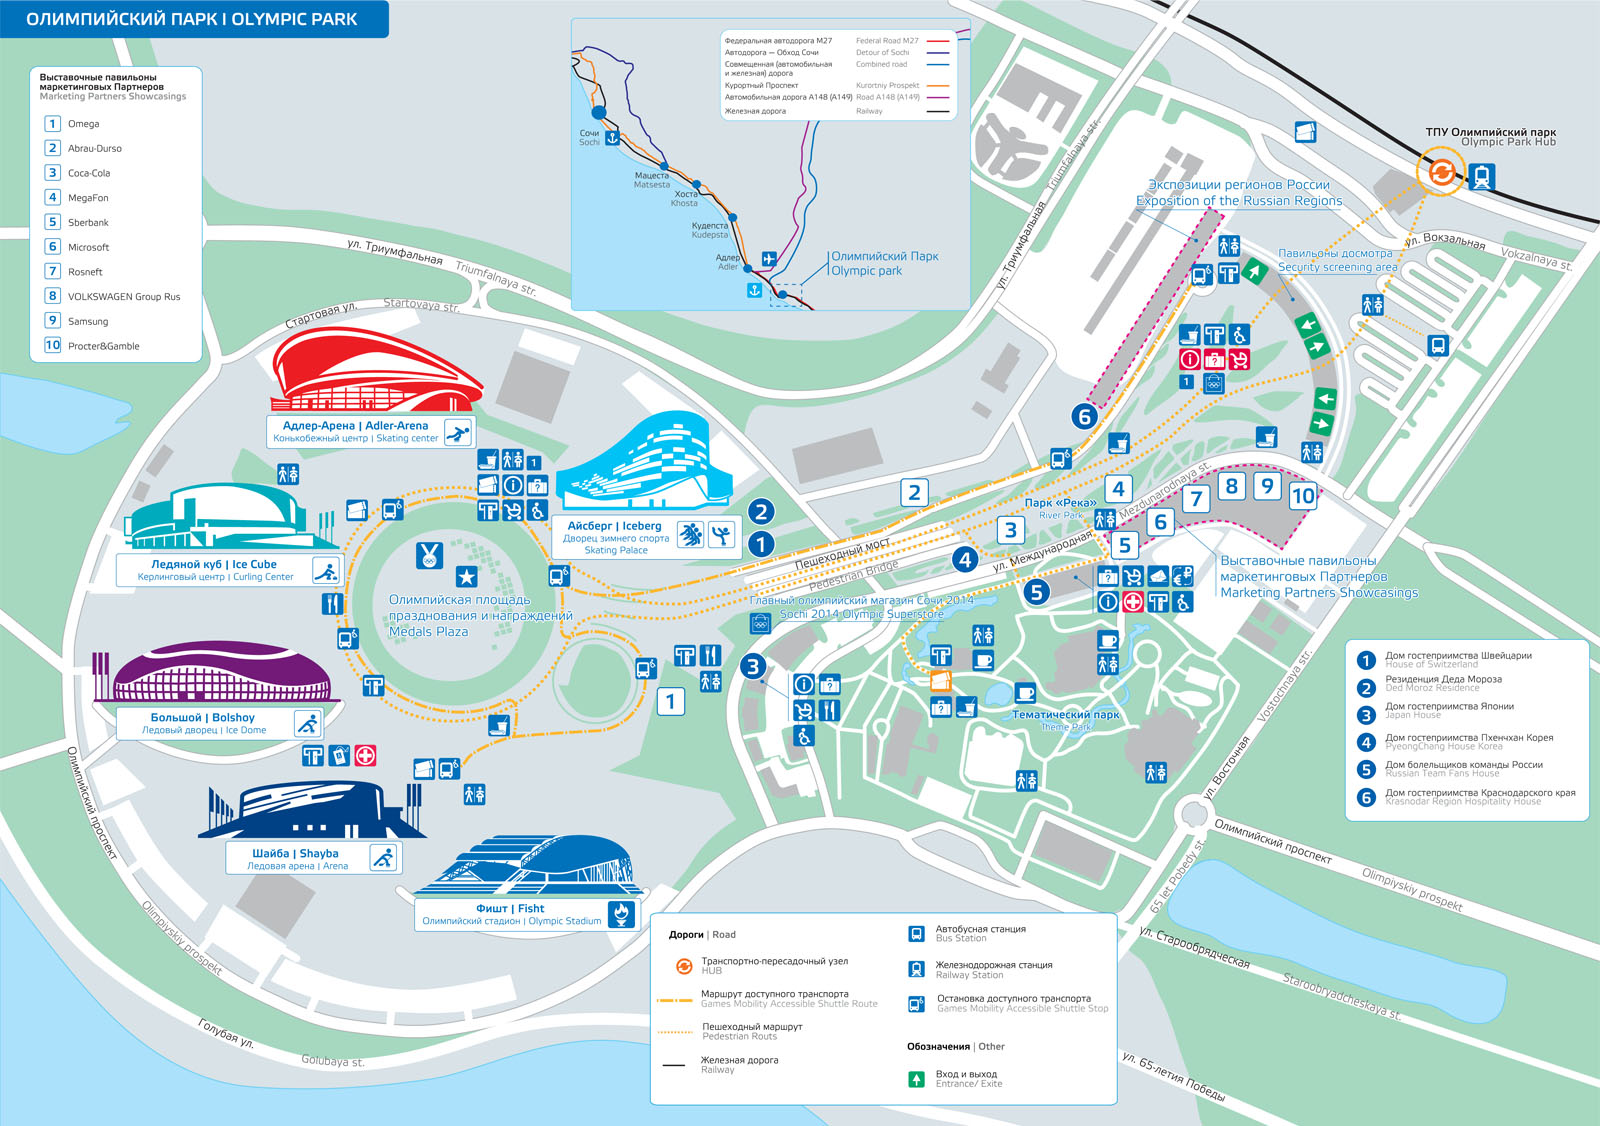 14_olympic park map